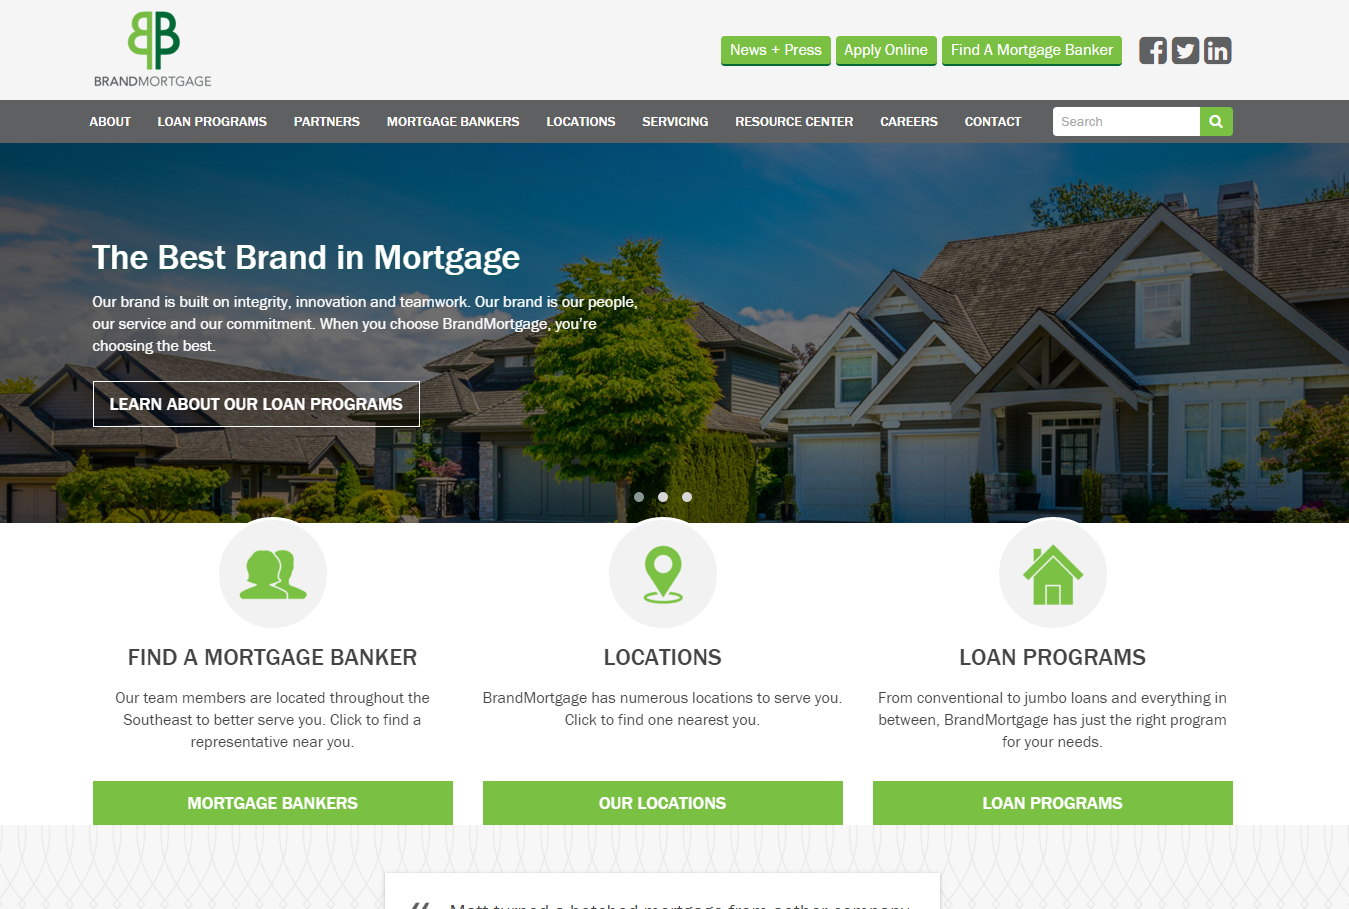 brandmortgage